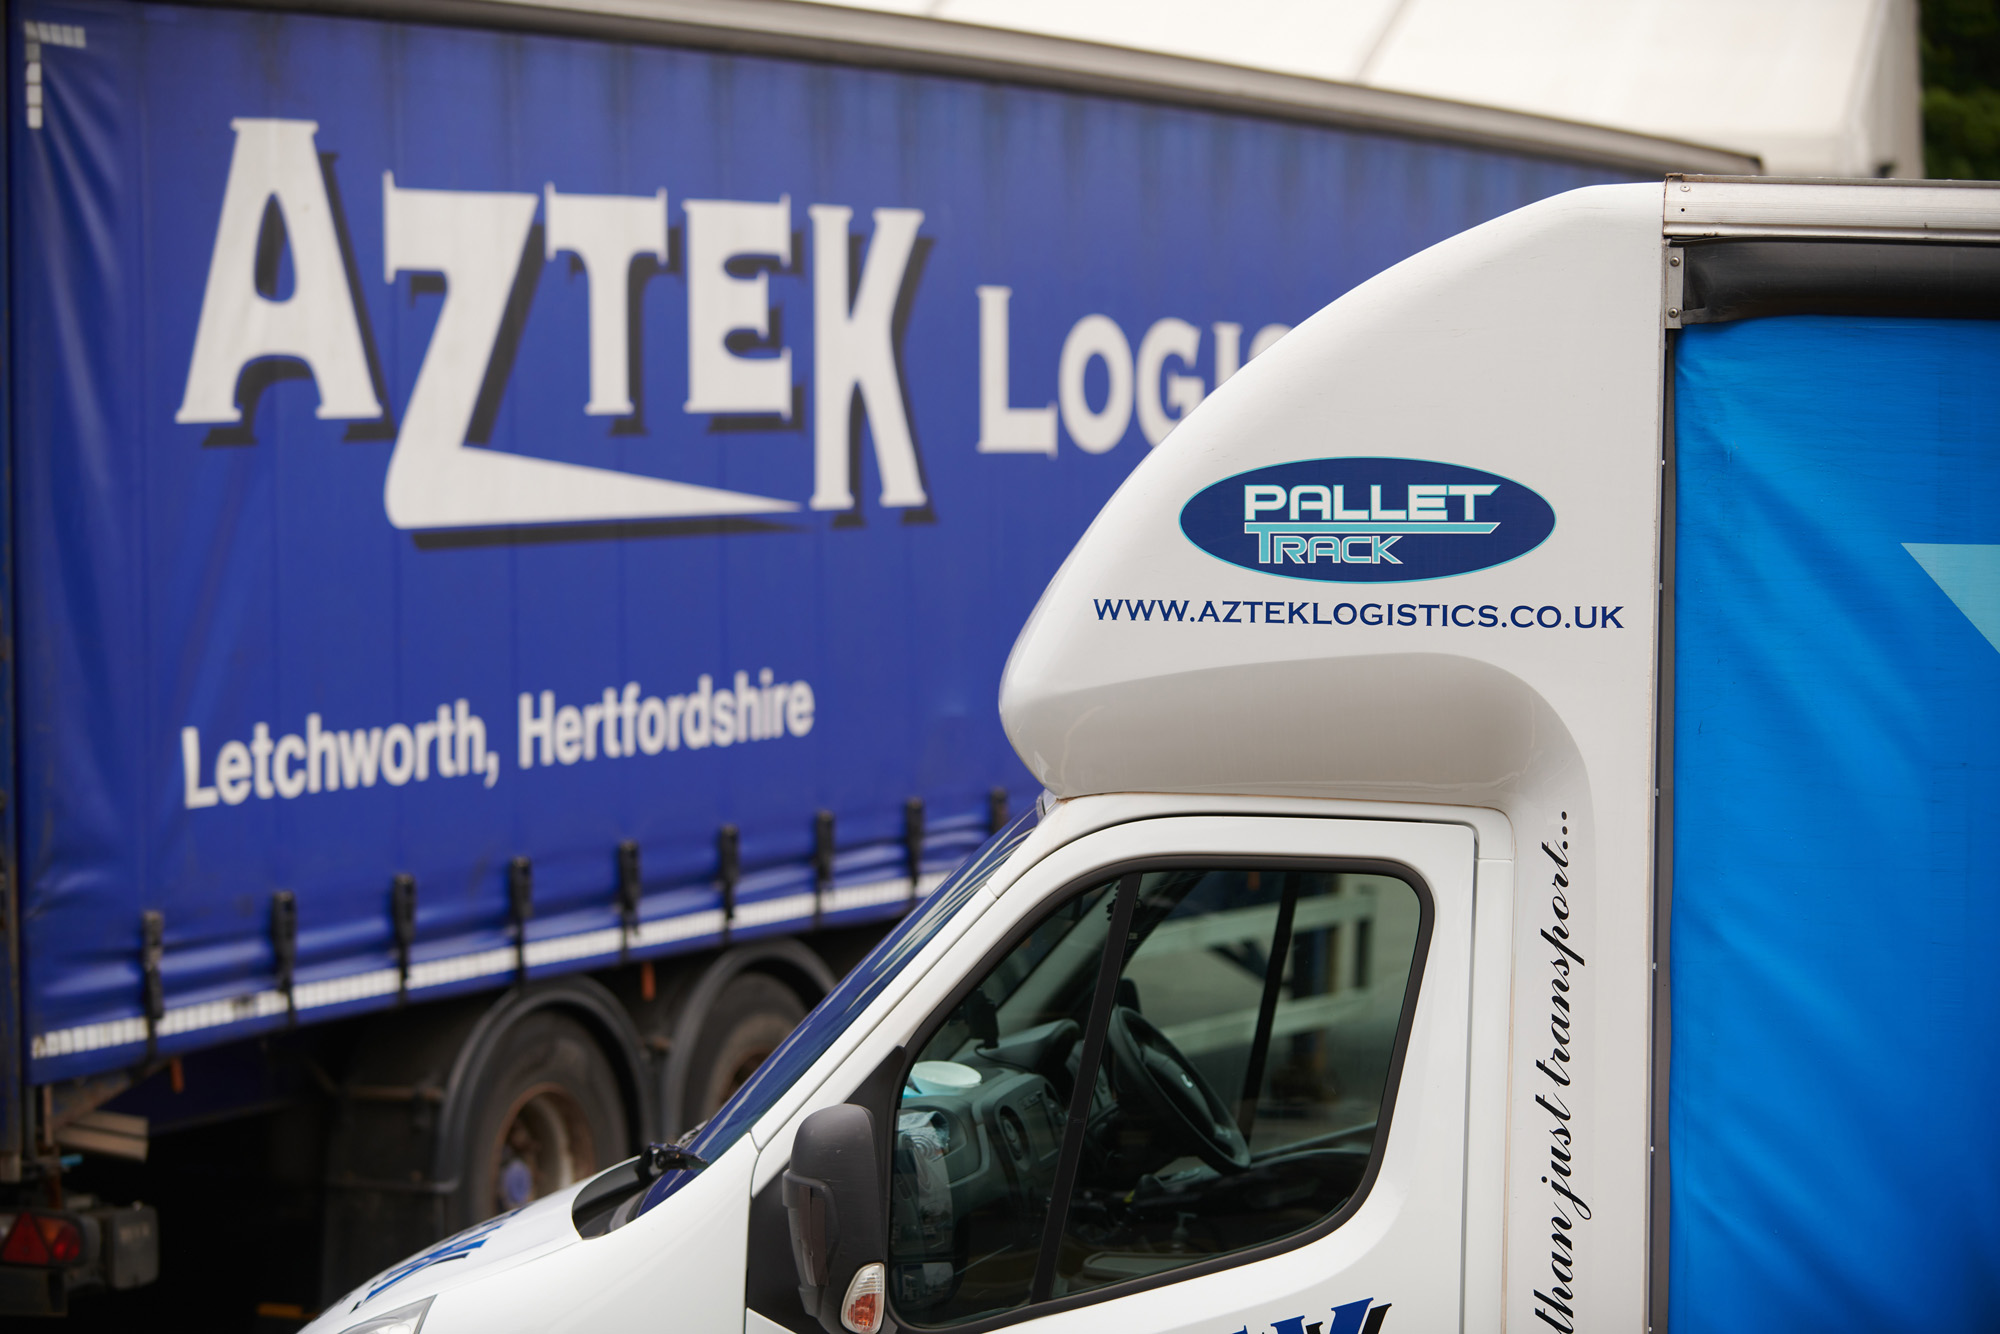 Aztek Logistics and Pallet-Track